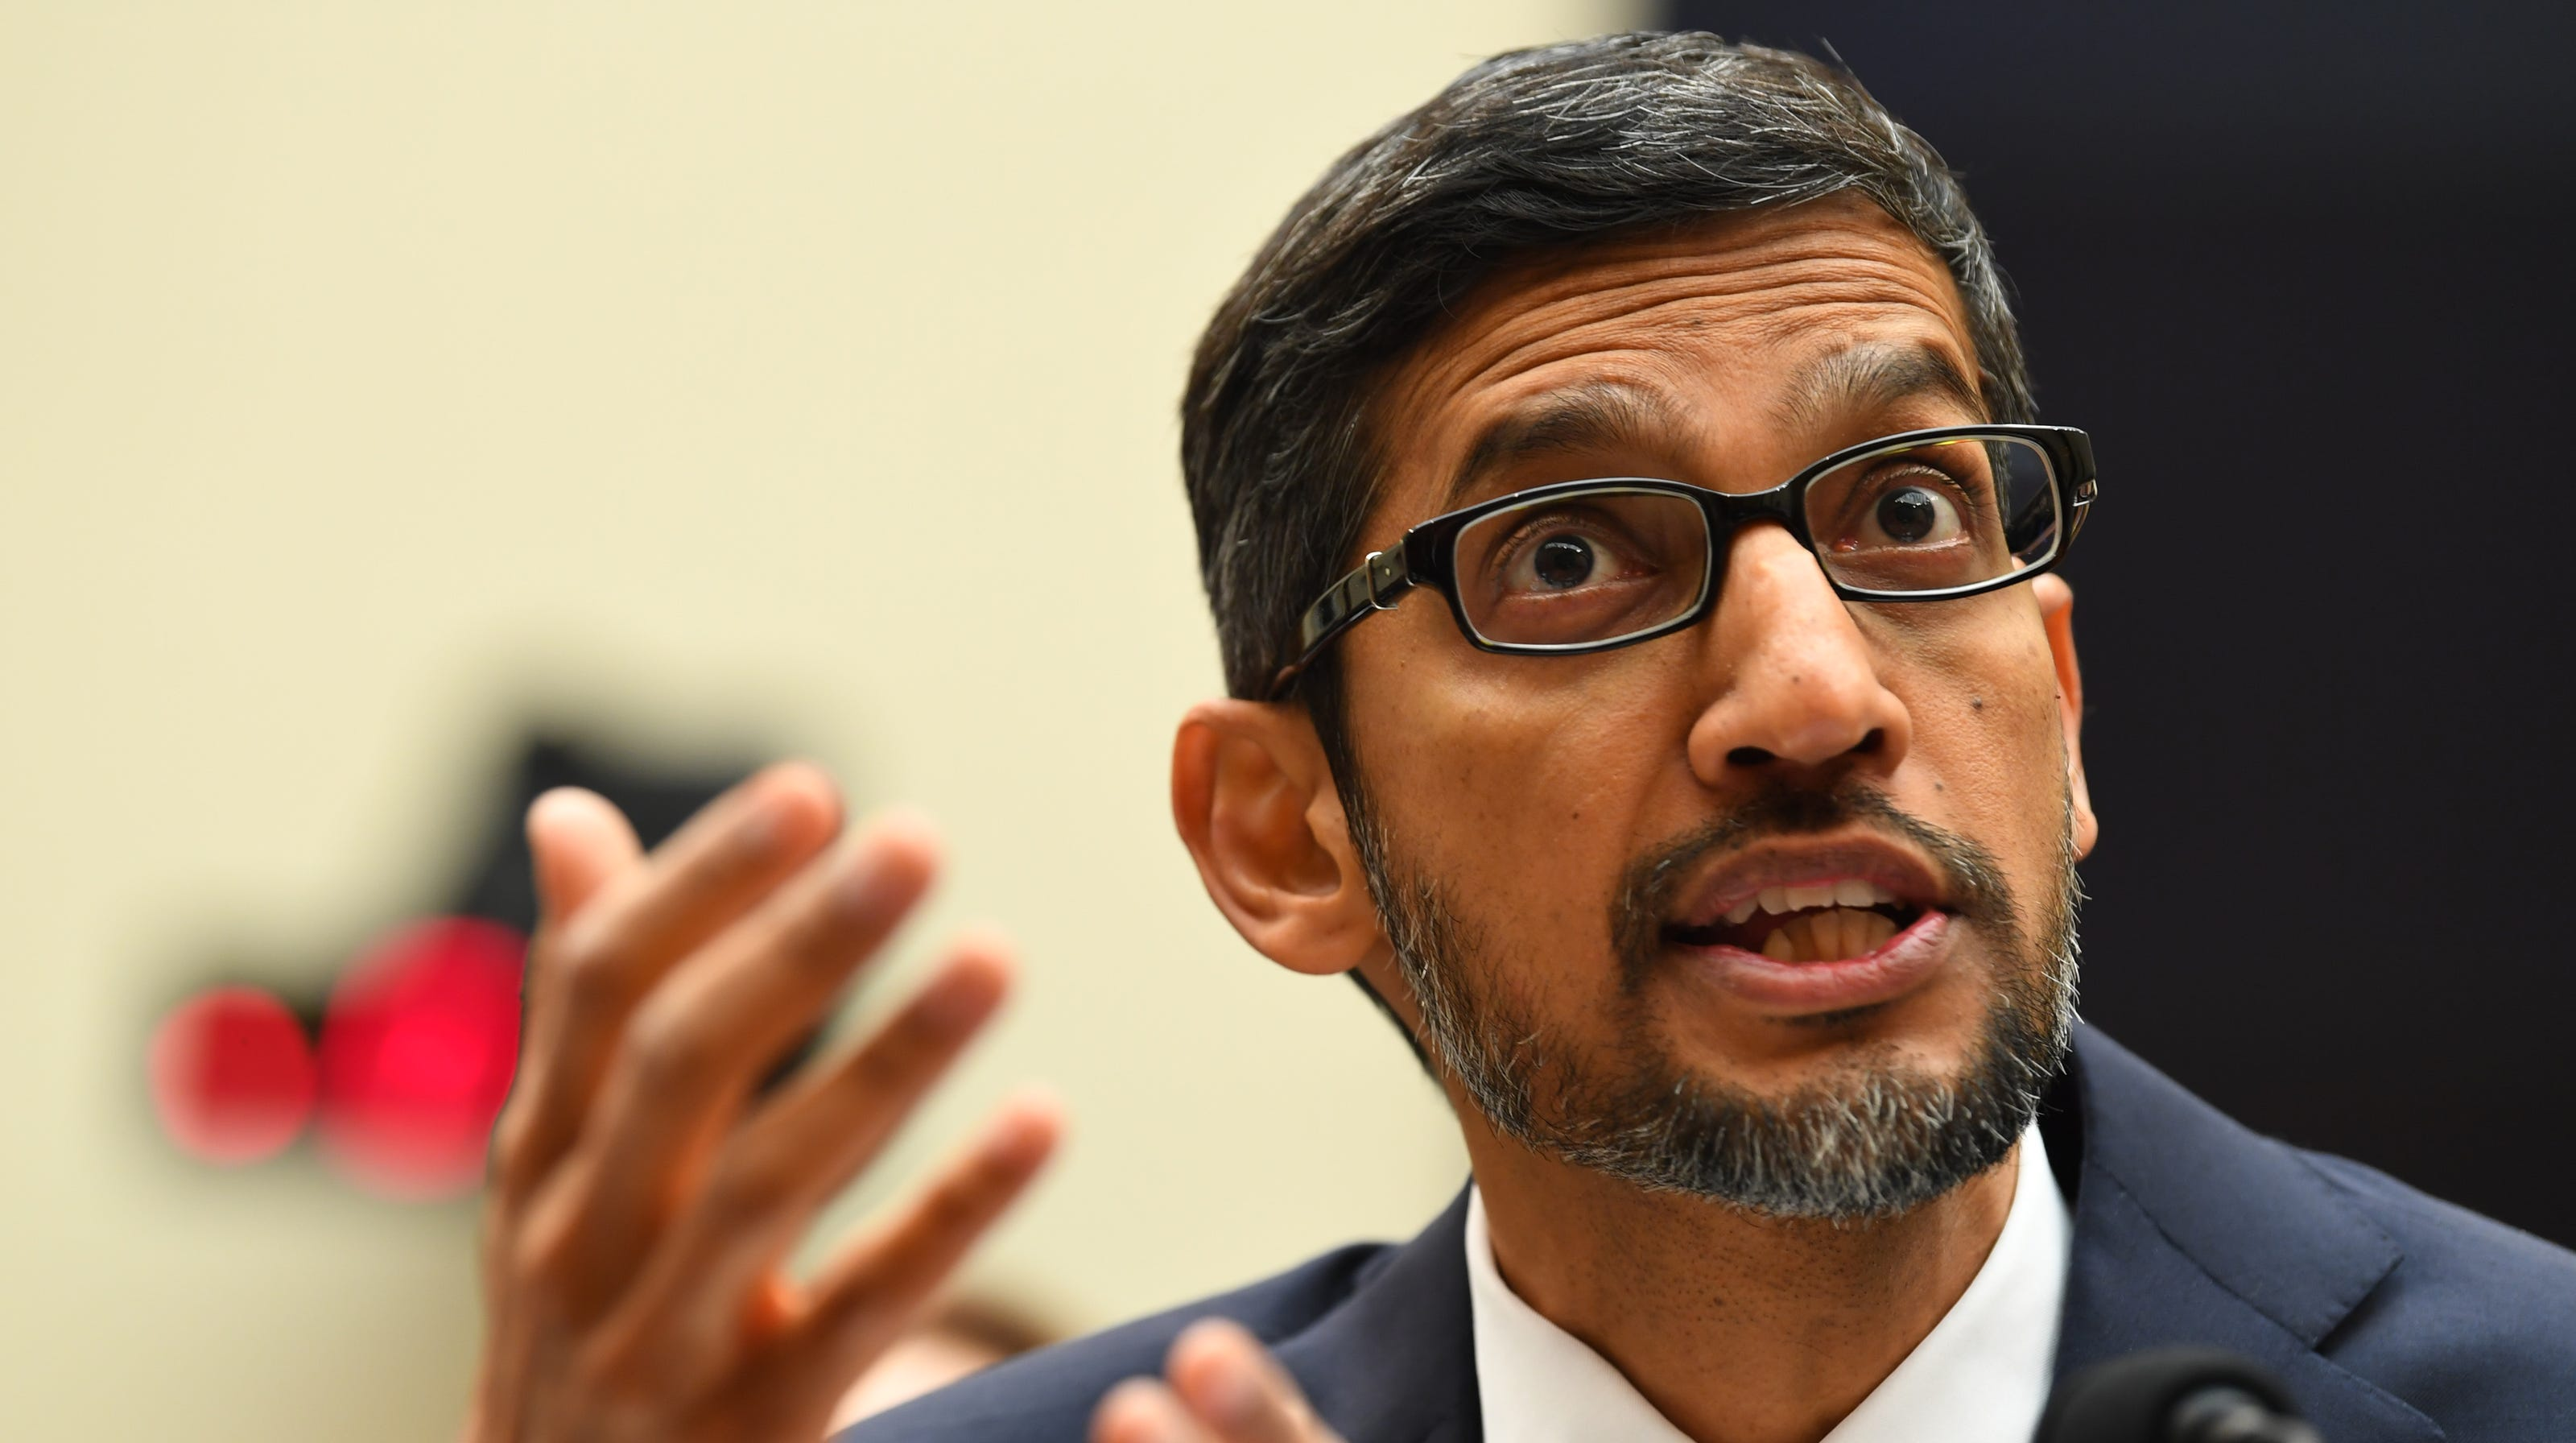 'Offensive and embarrassing': Senators struggle to pronounce Google CEO Sundar Pichai's name correctly